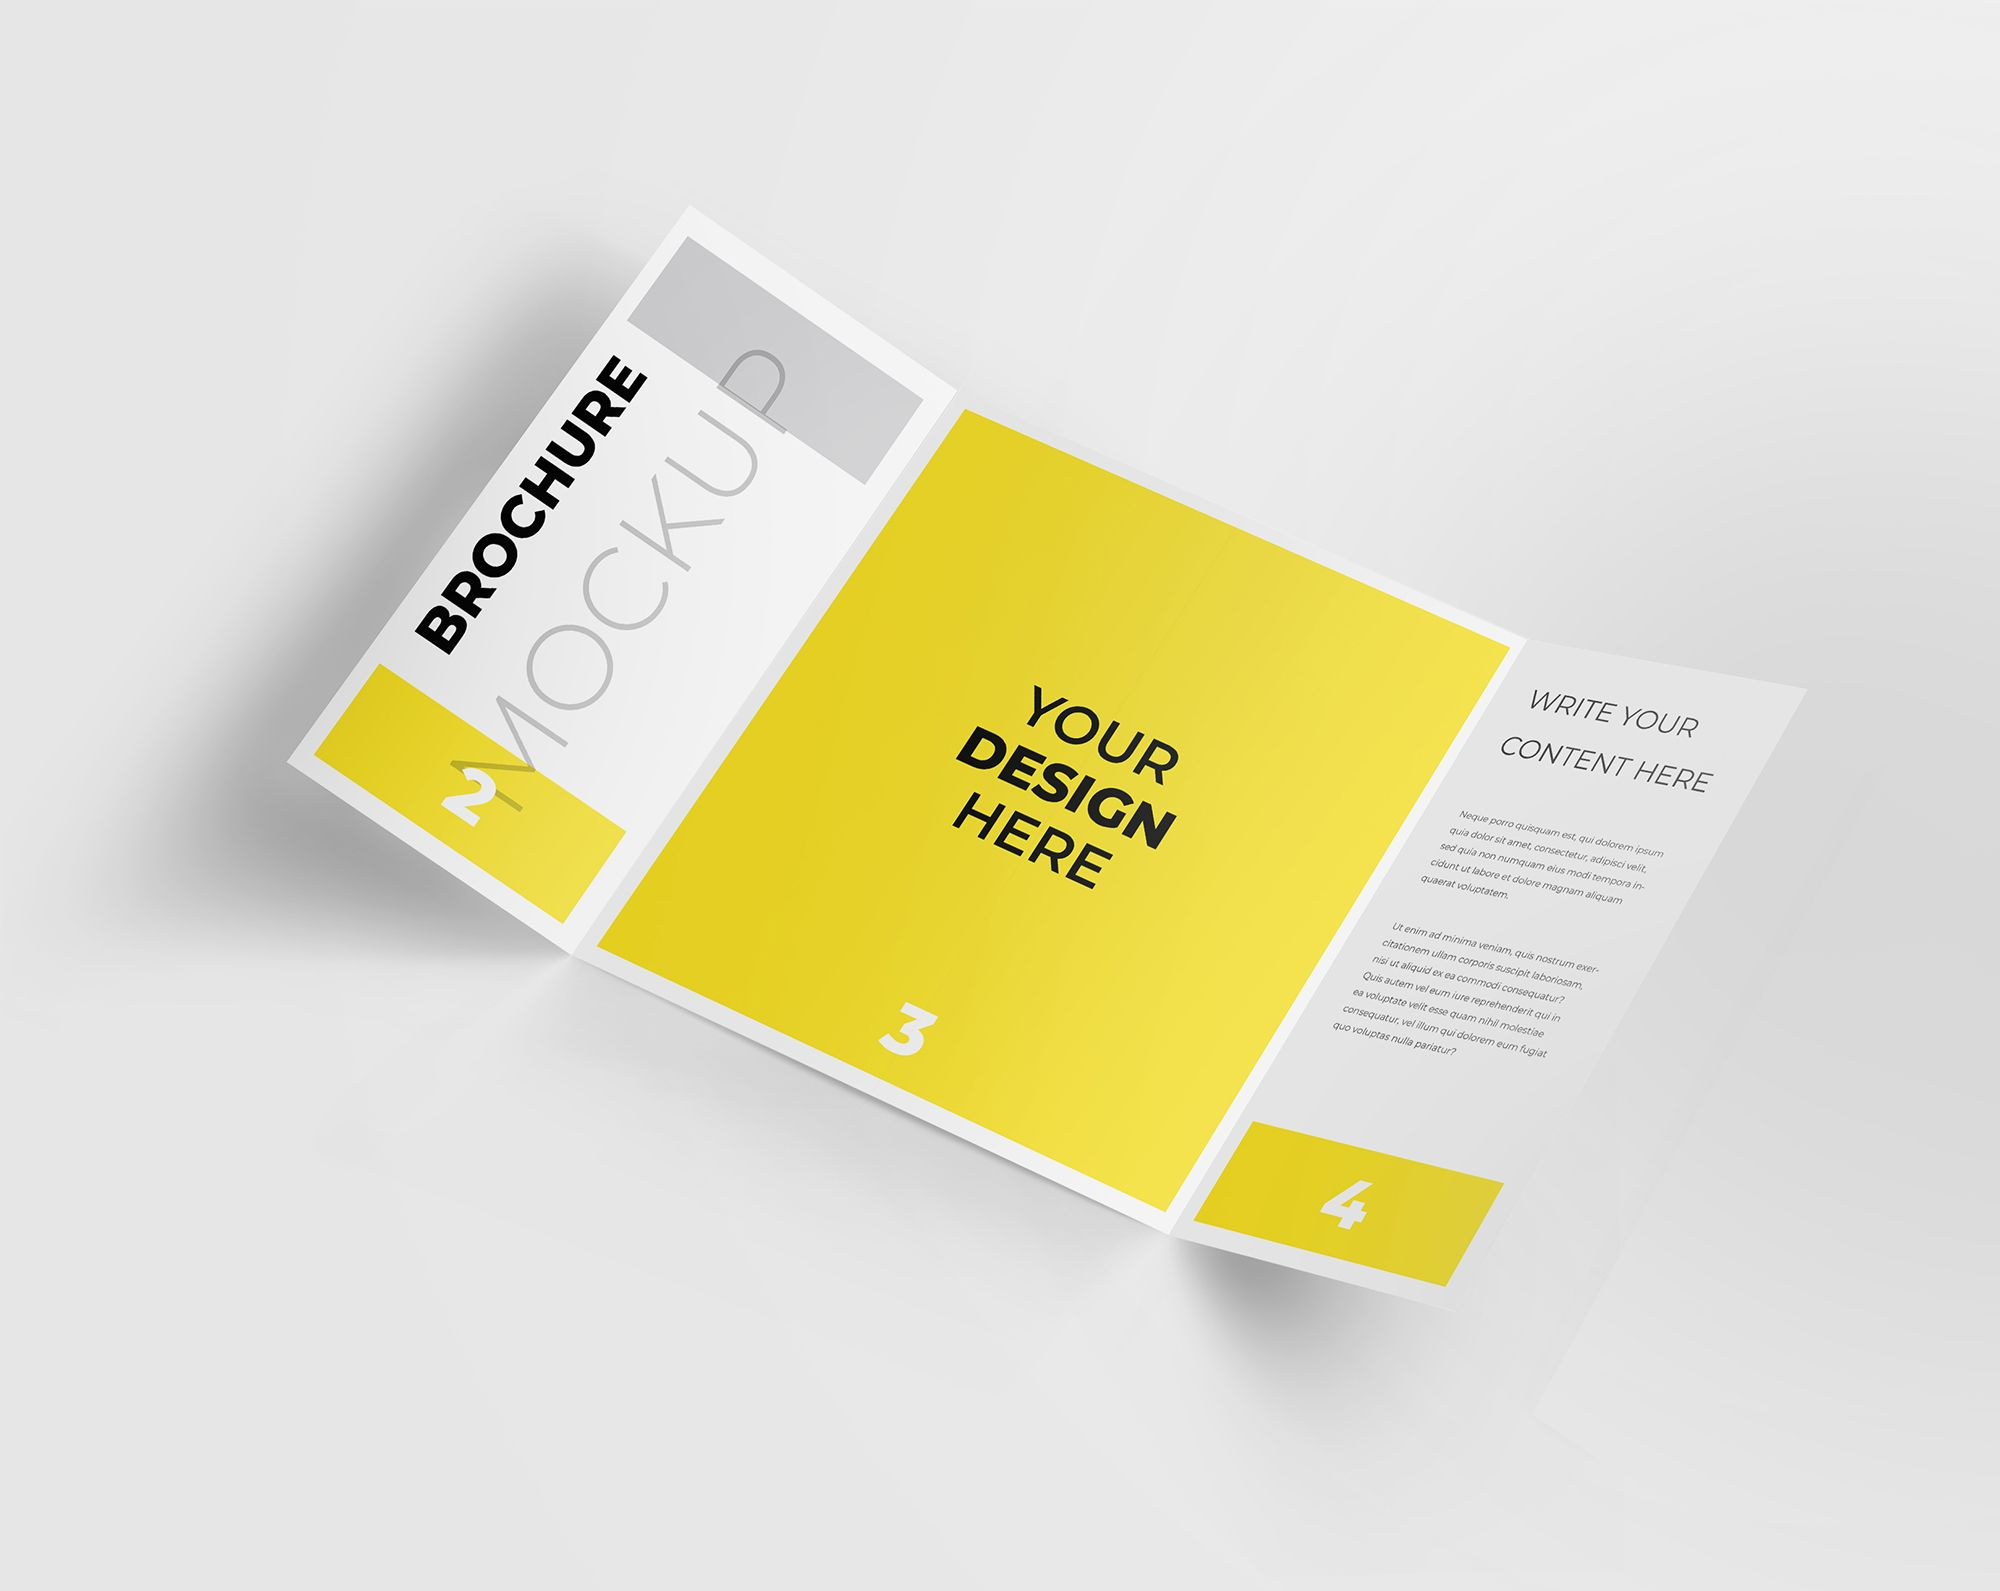 60 Free Brochure Mockup Templates For Your Designs Brochure Mockup Free Brochure Template Brochure Mockup Psd